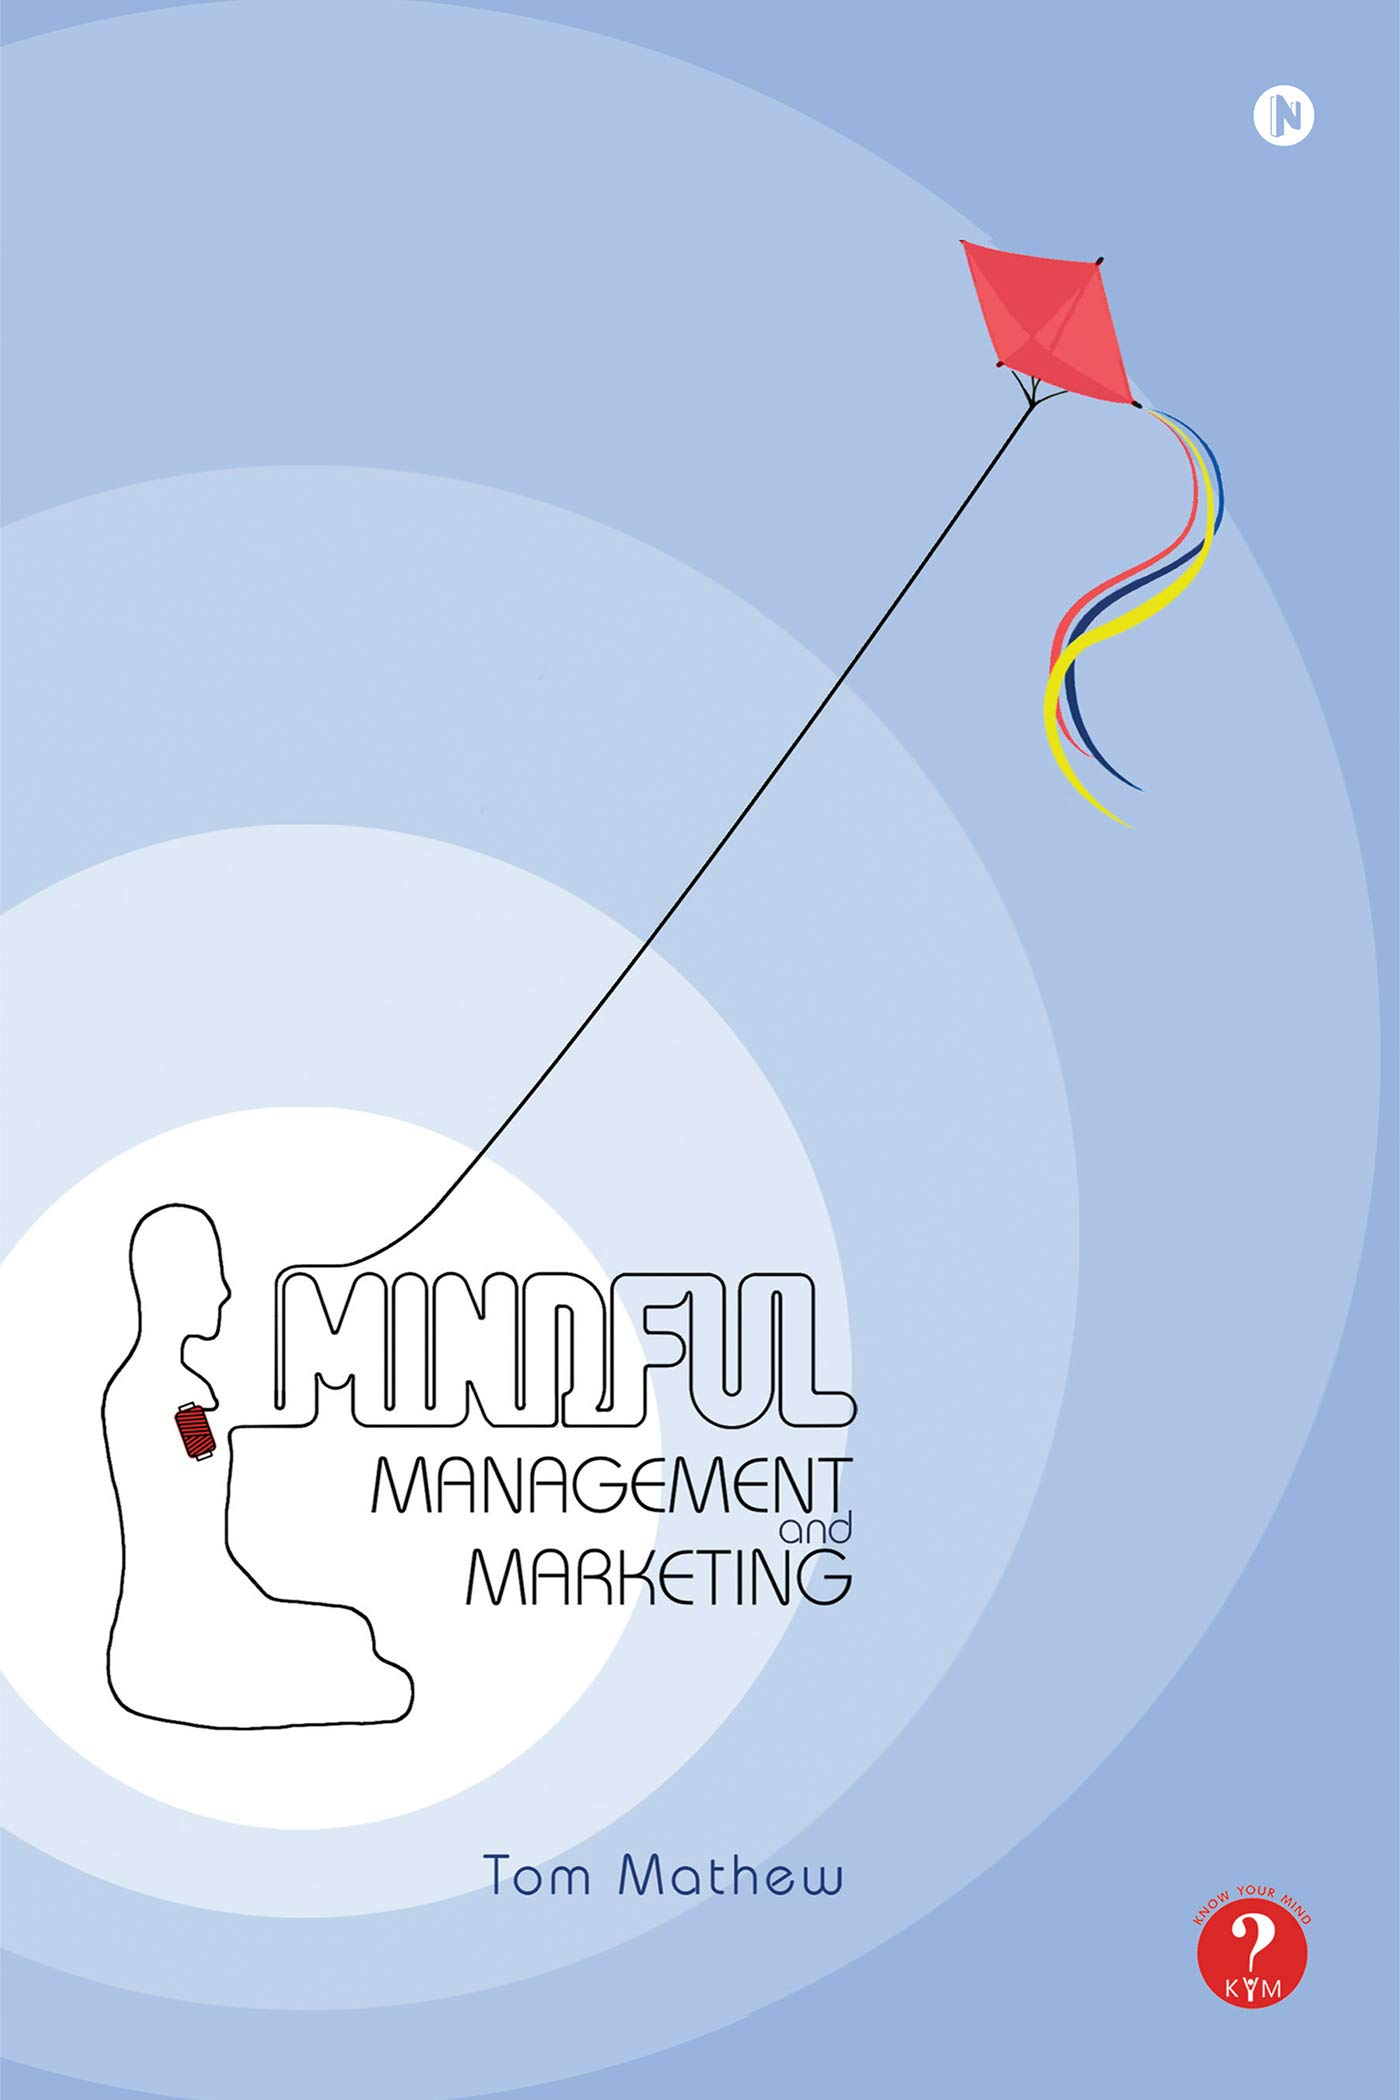 Mindful Management and Marketing